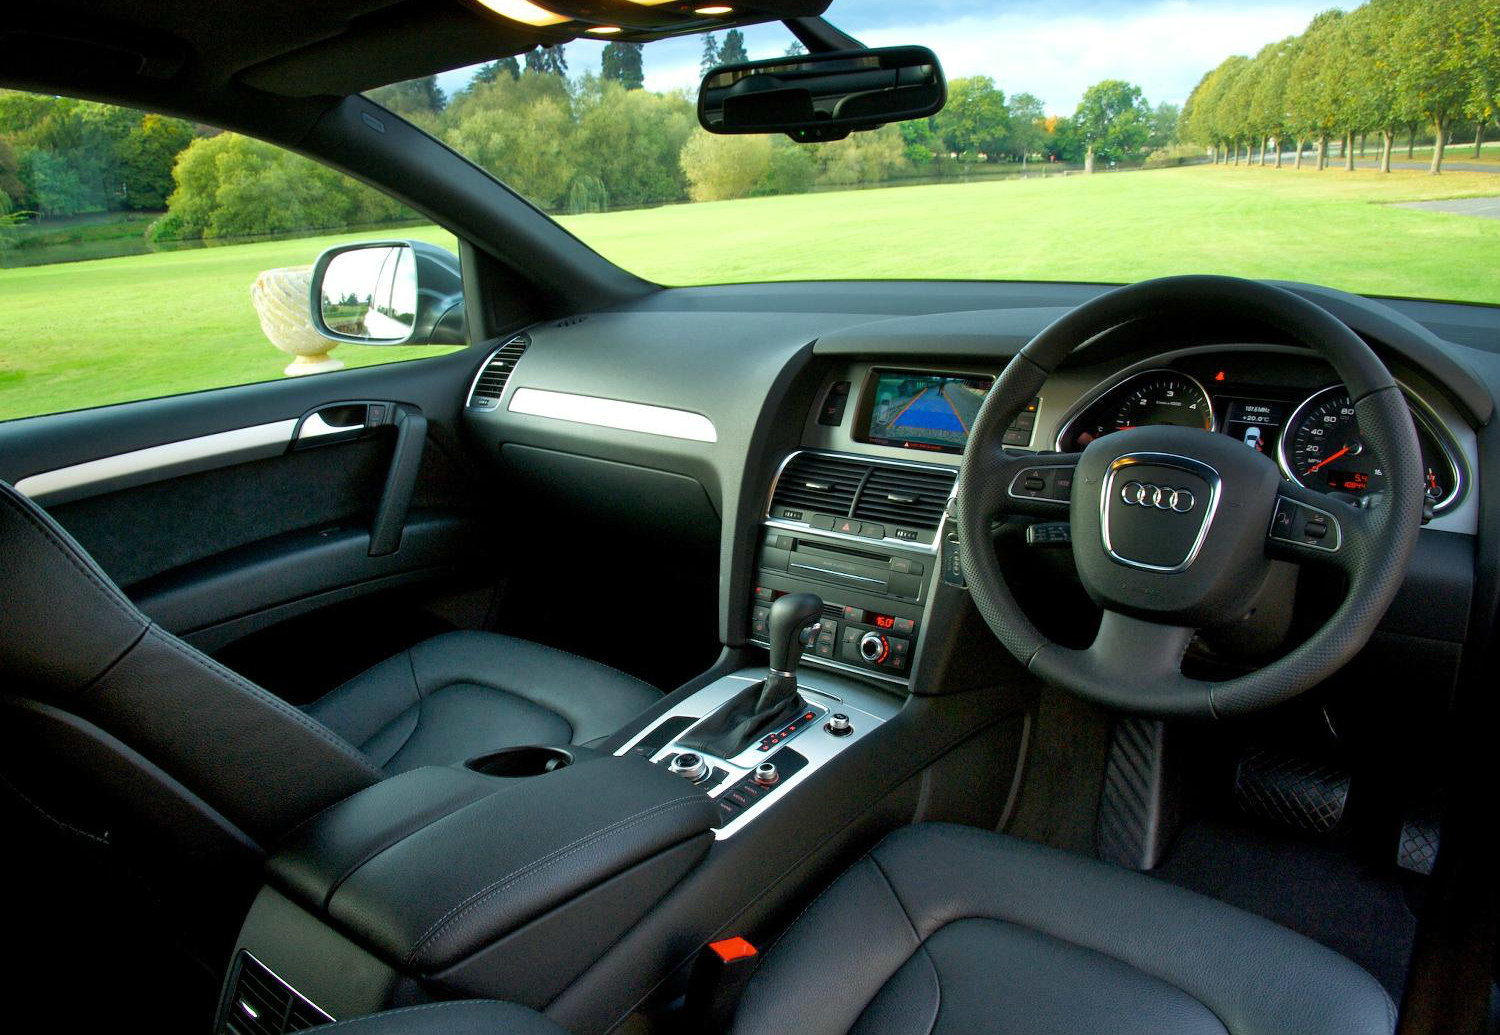 image of an audi q7 car interior